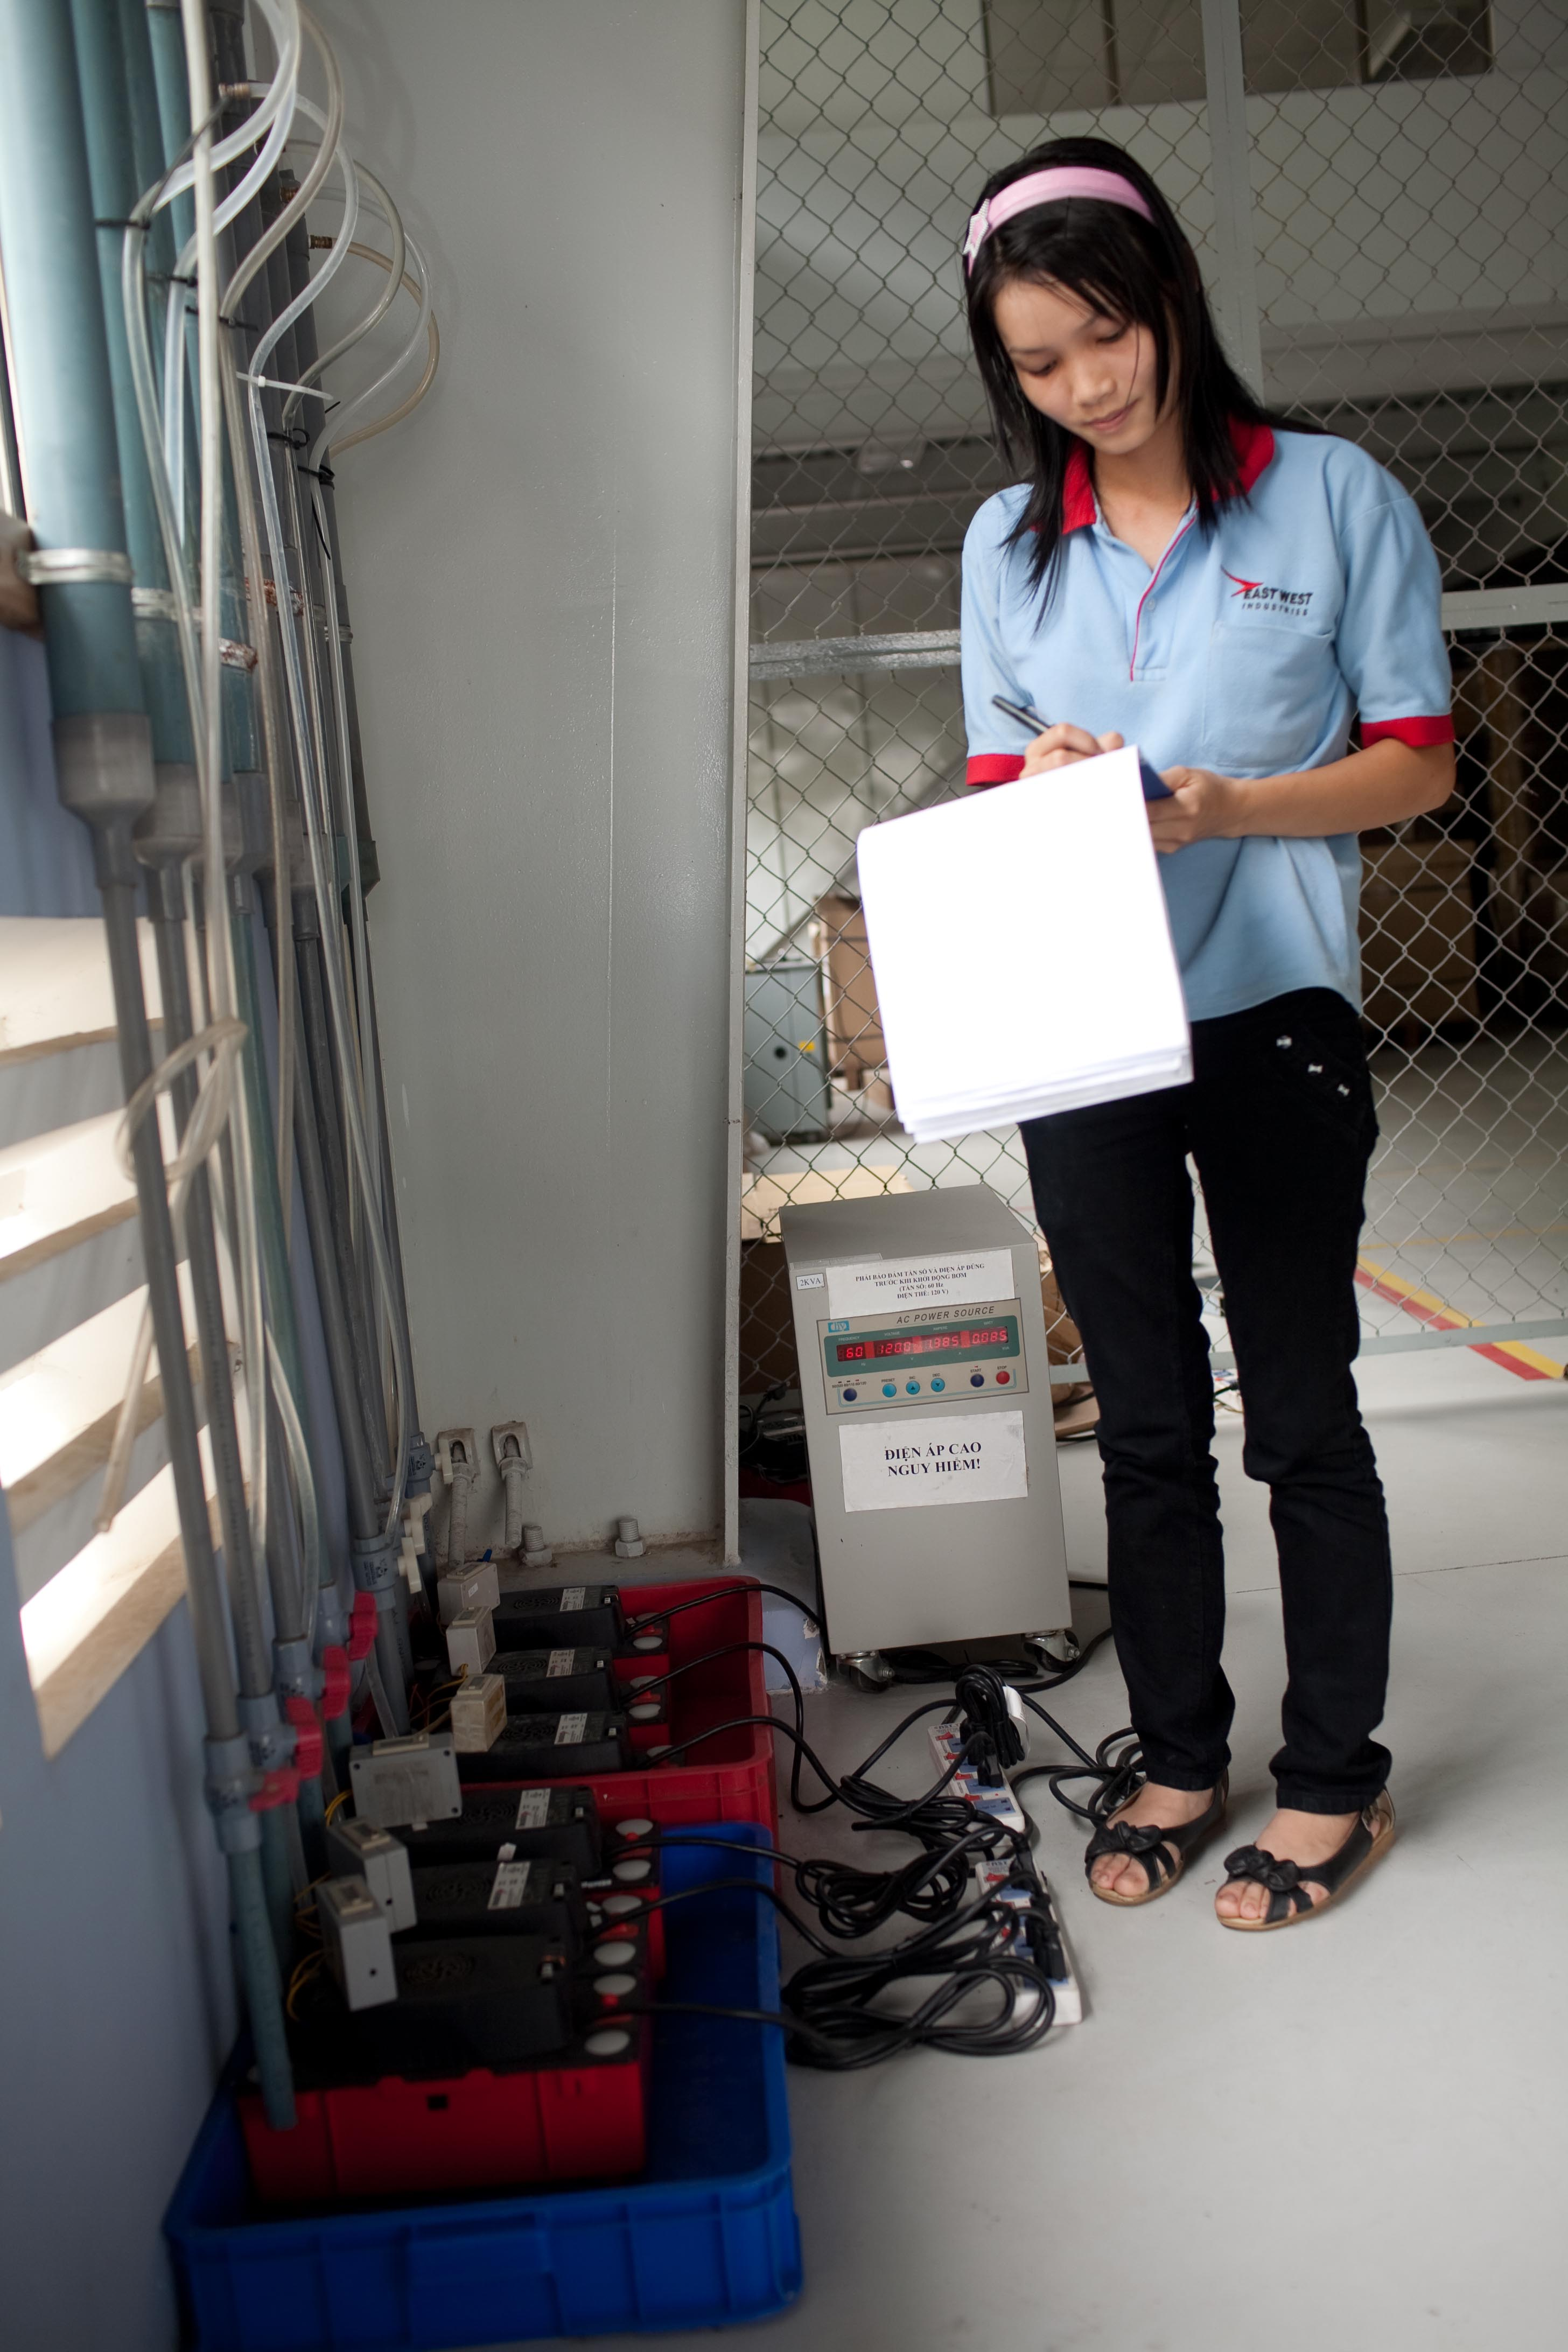 East West Manufacturing Quality Assurance